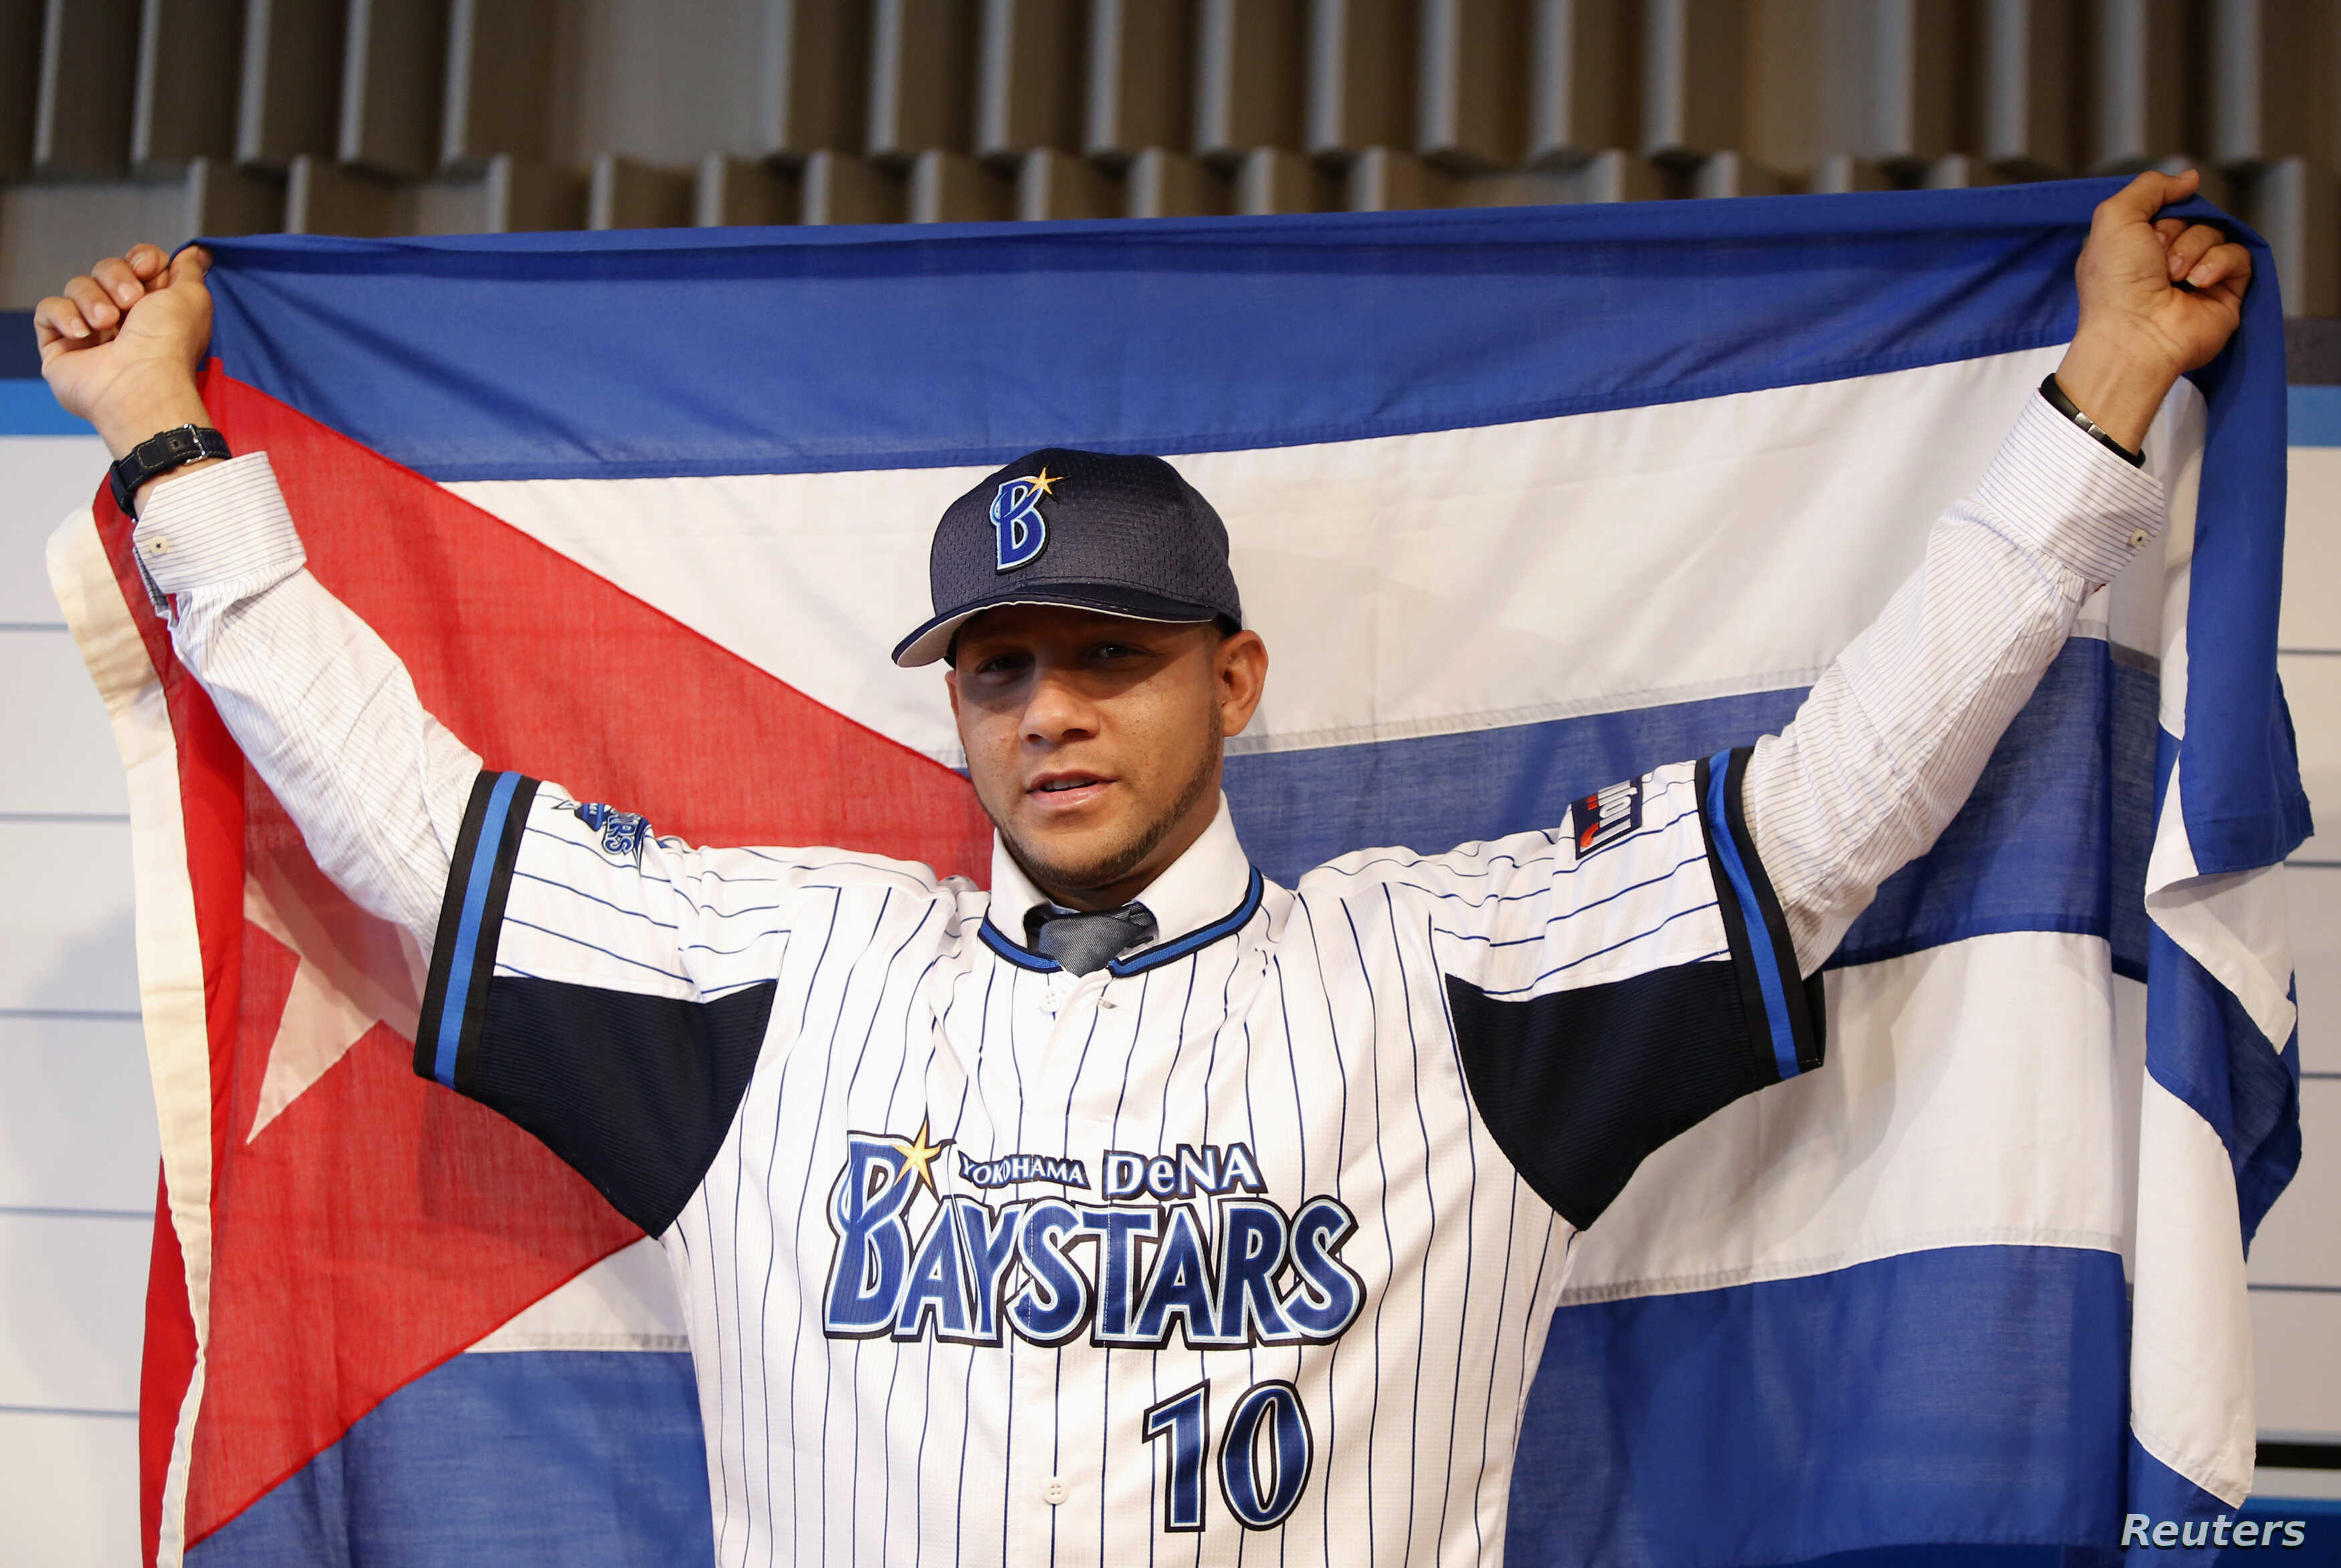 Cuba's baseball player Yulieski Gourriel poses for photographs with the Cuban national flag during a news conference as he joins Japan's Yokohama DeNA BayStars in Yokohama, south of Tokyo, June 2, 2014.